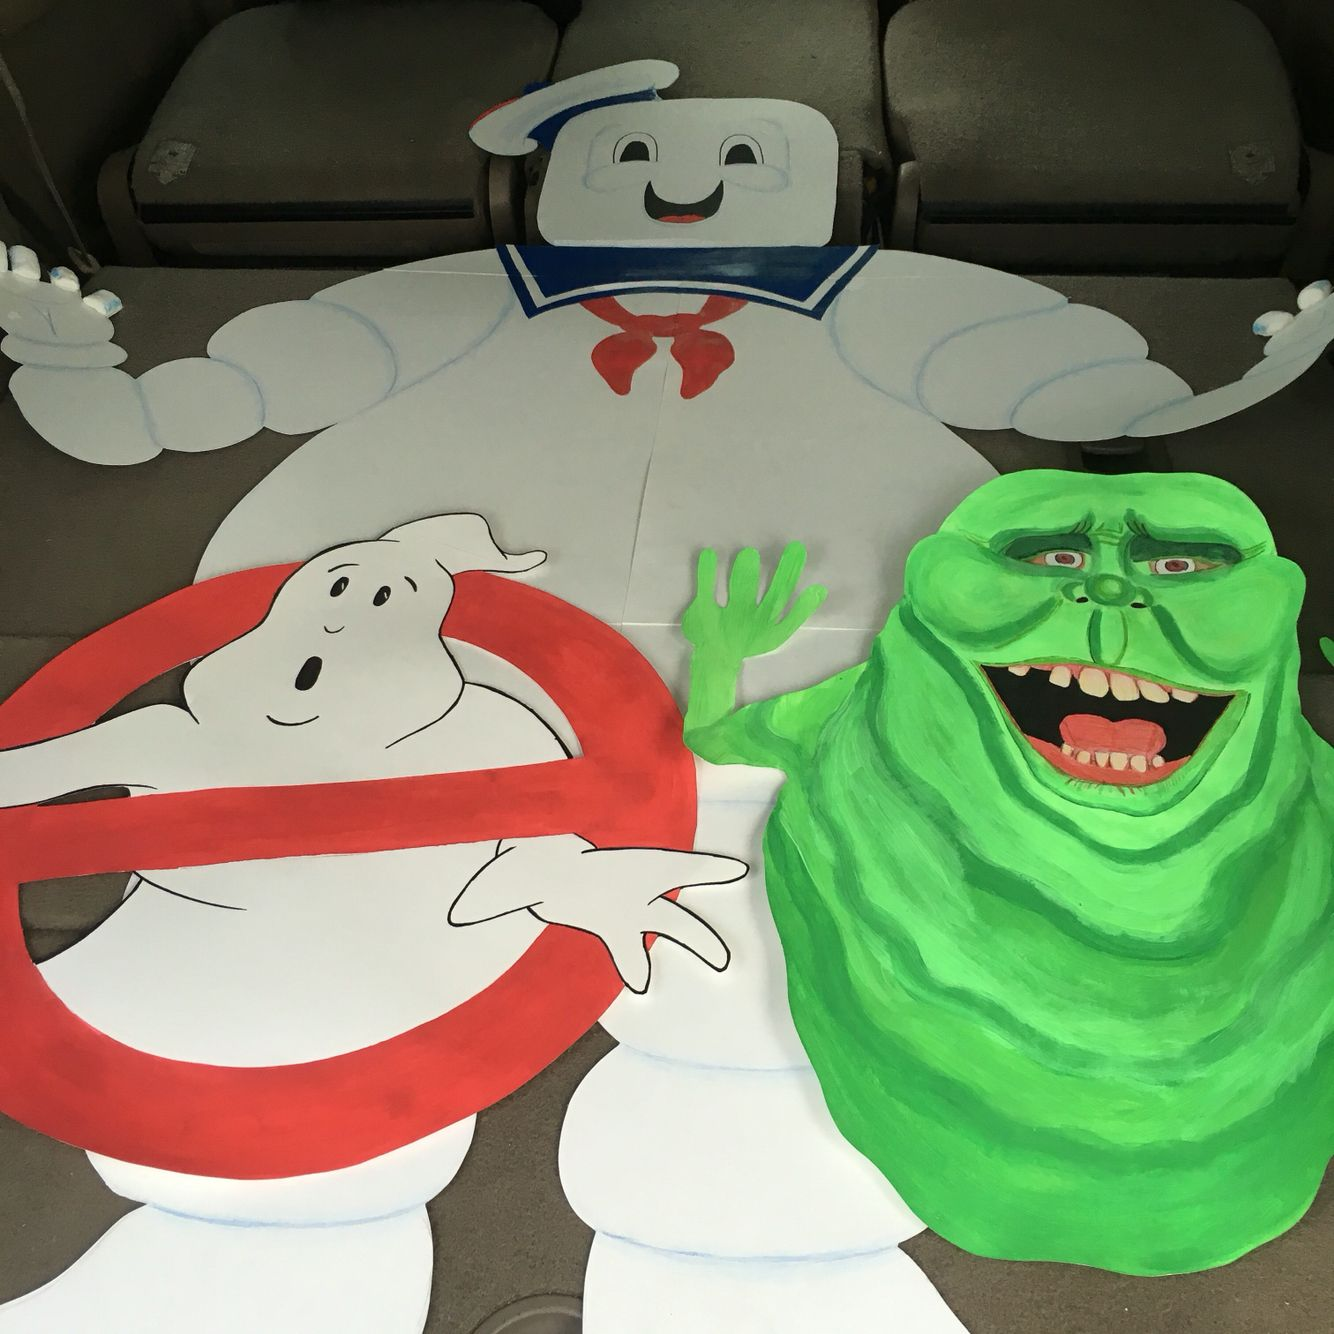 I Made These Ghostbusters Characters For My Nephews Bday